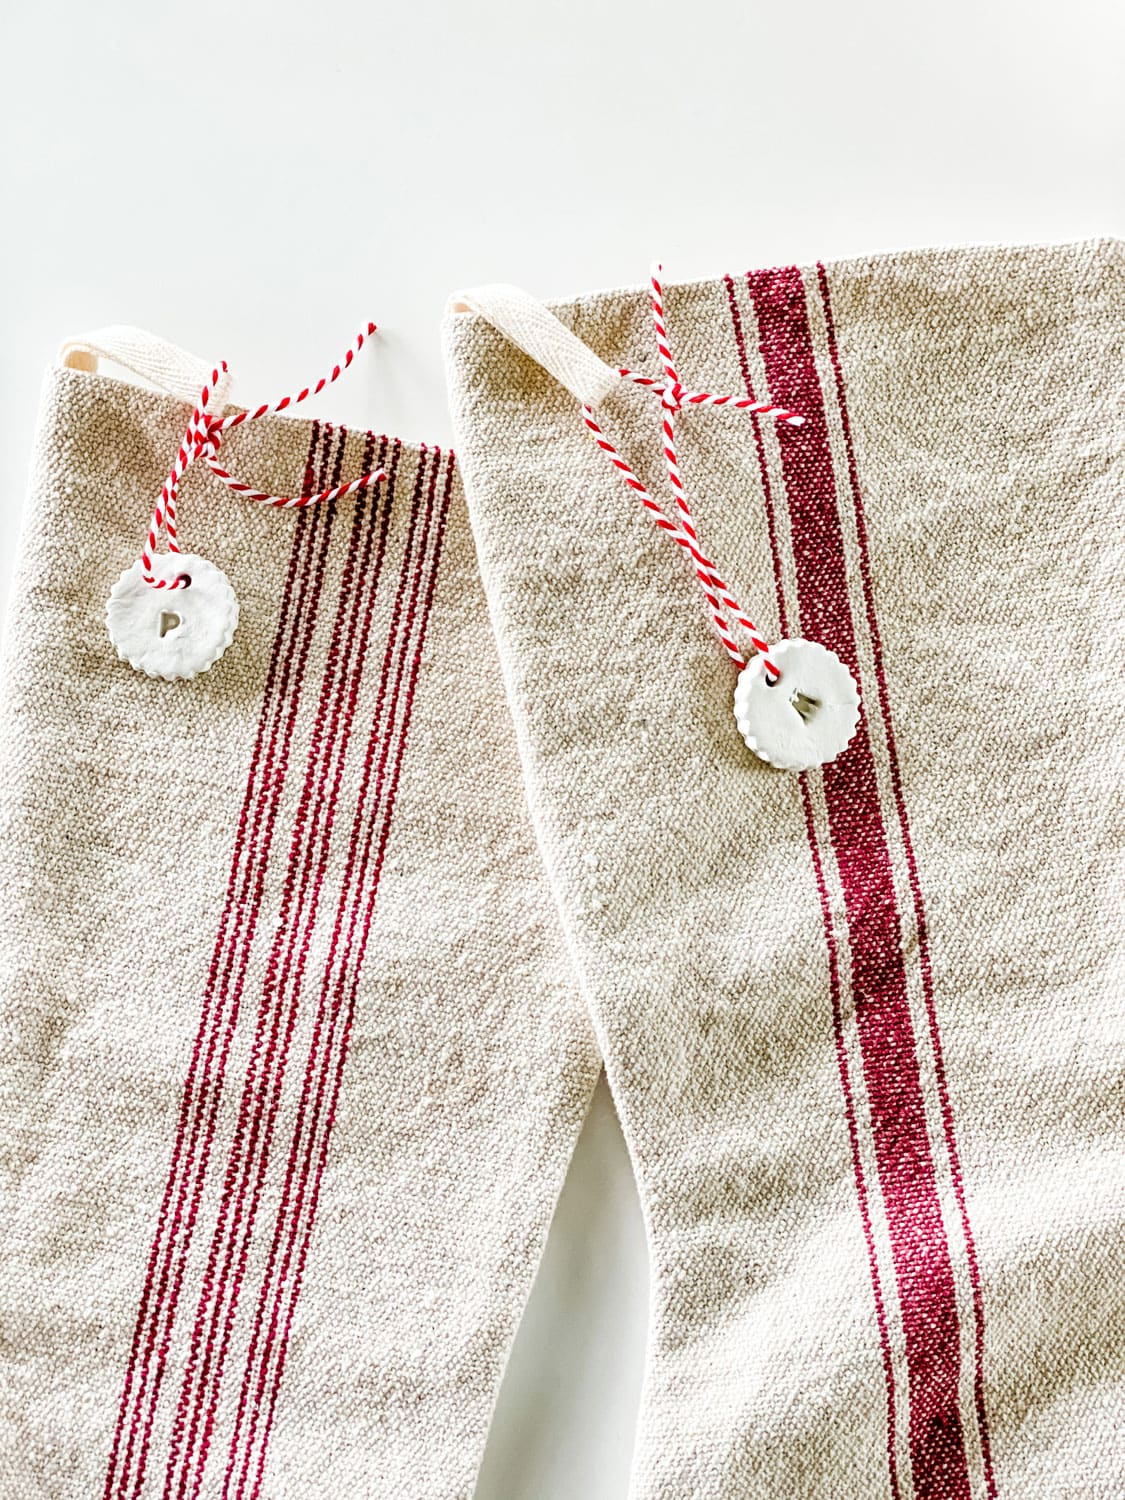 clay tags on Christmas grain sack stockings